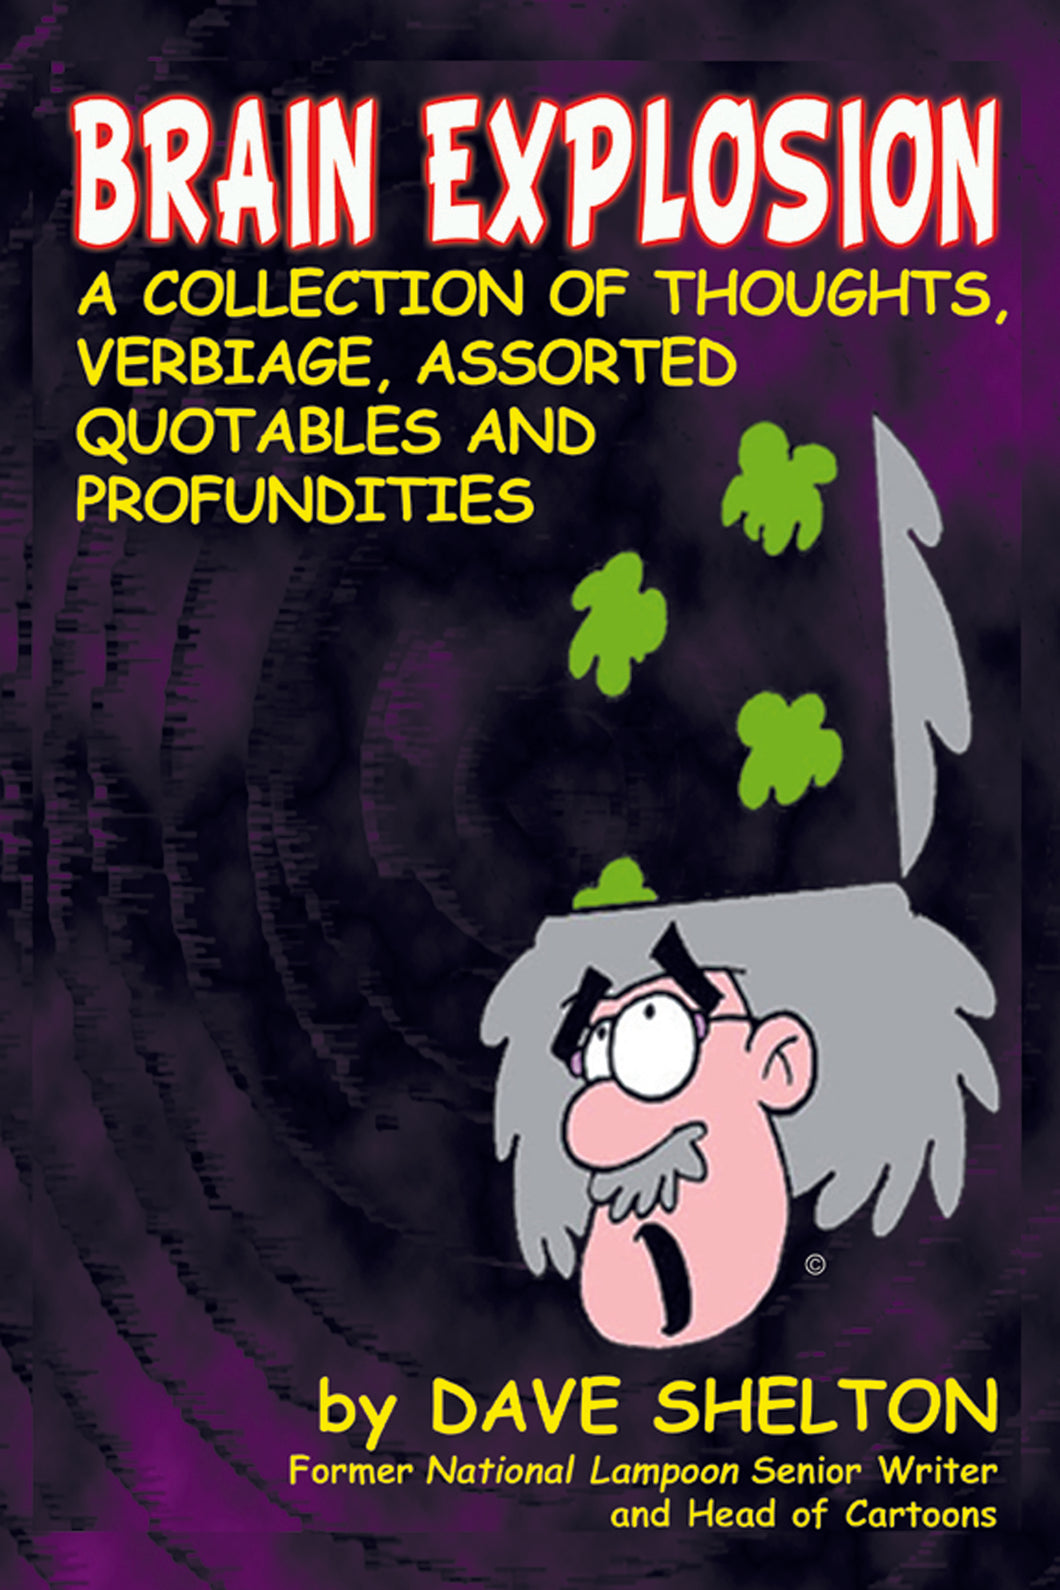 Brain Explosion: A Collection of Thoughts, Verbiage, Assorted Quotables and Profundities (paperback) - BearManor Manor